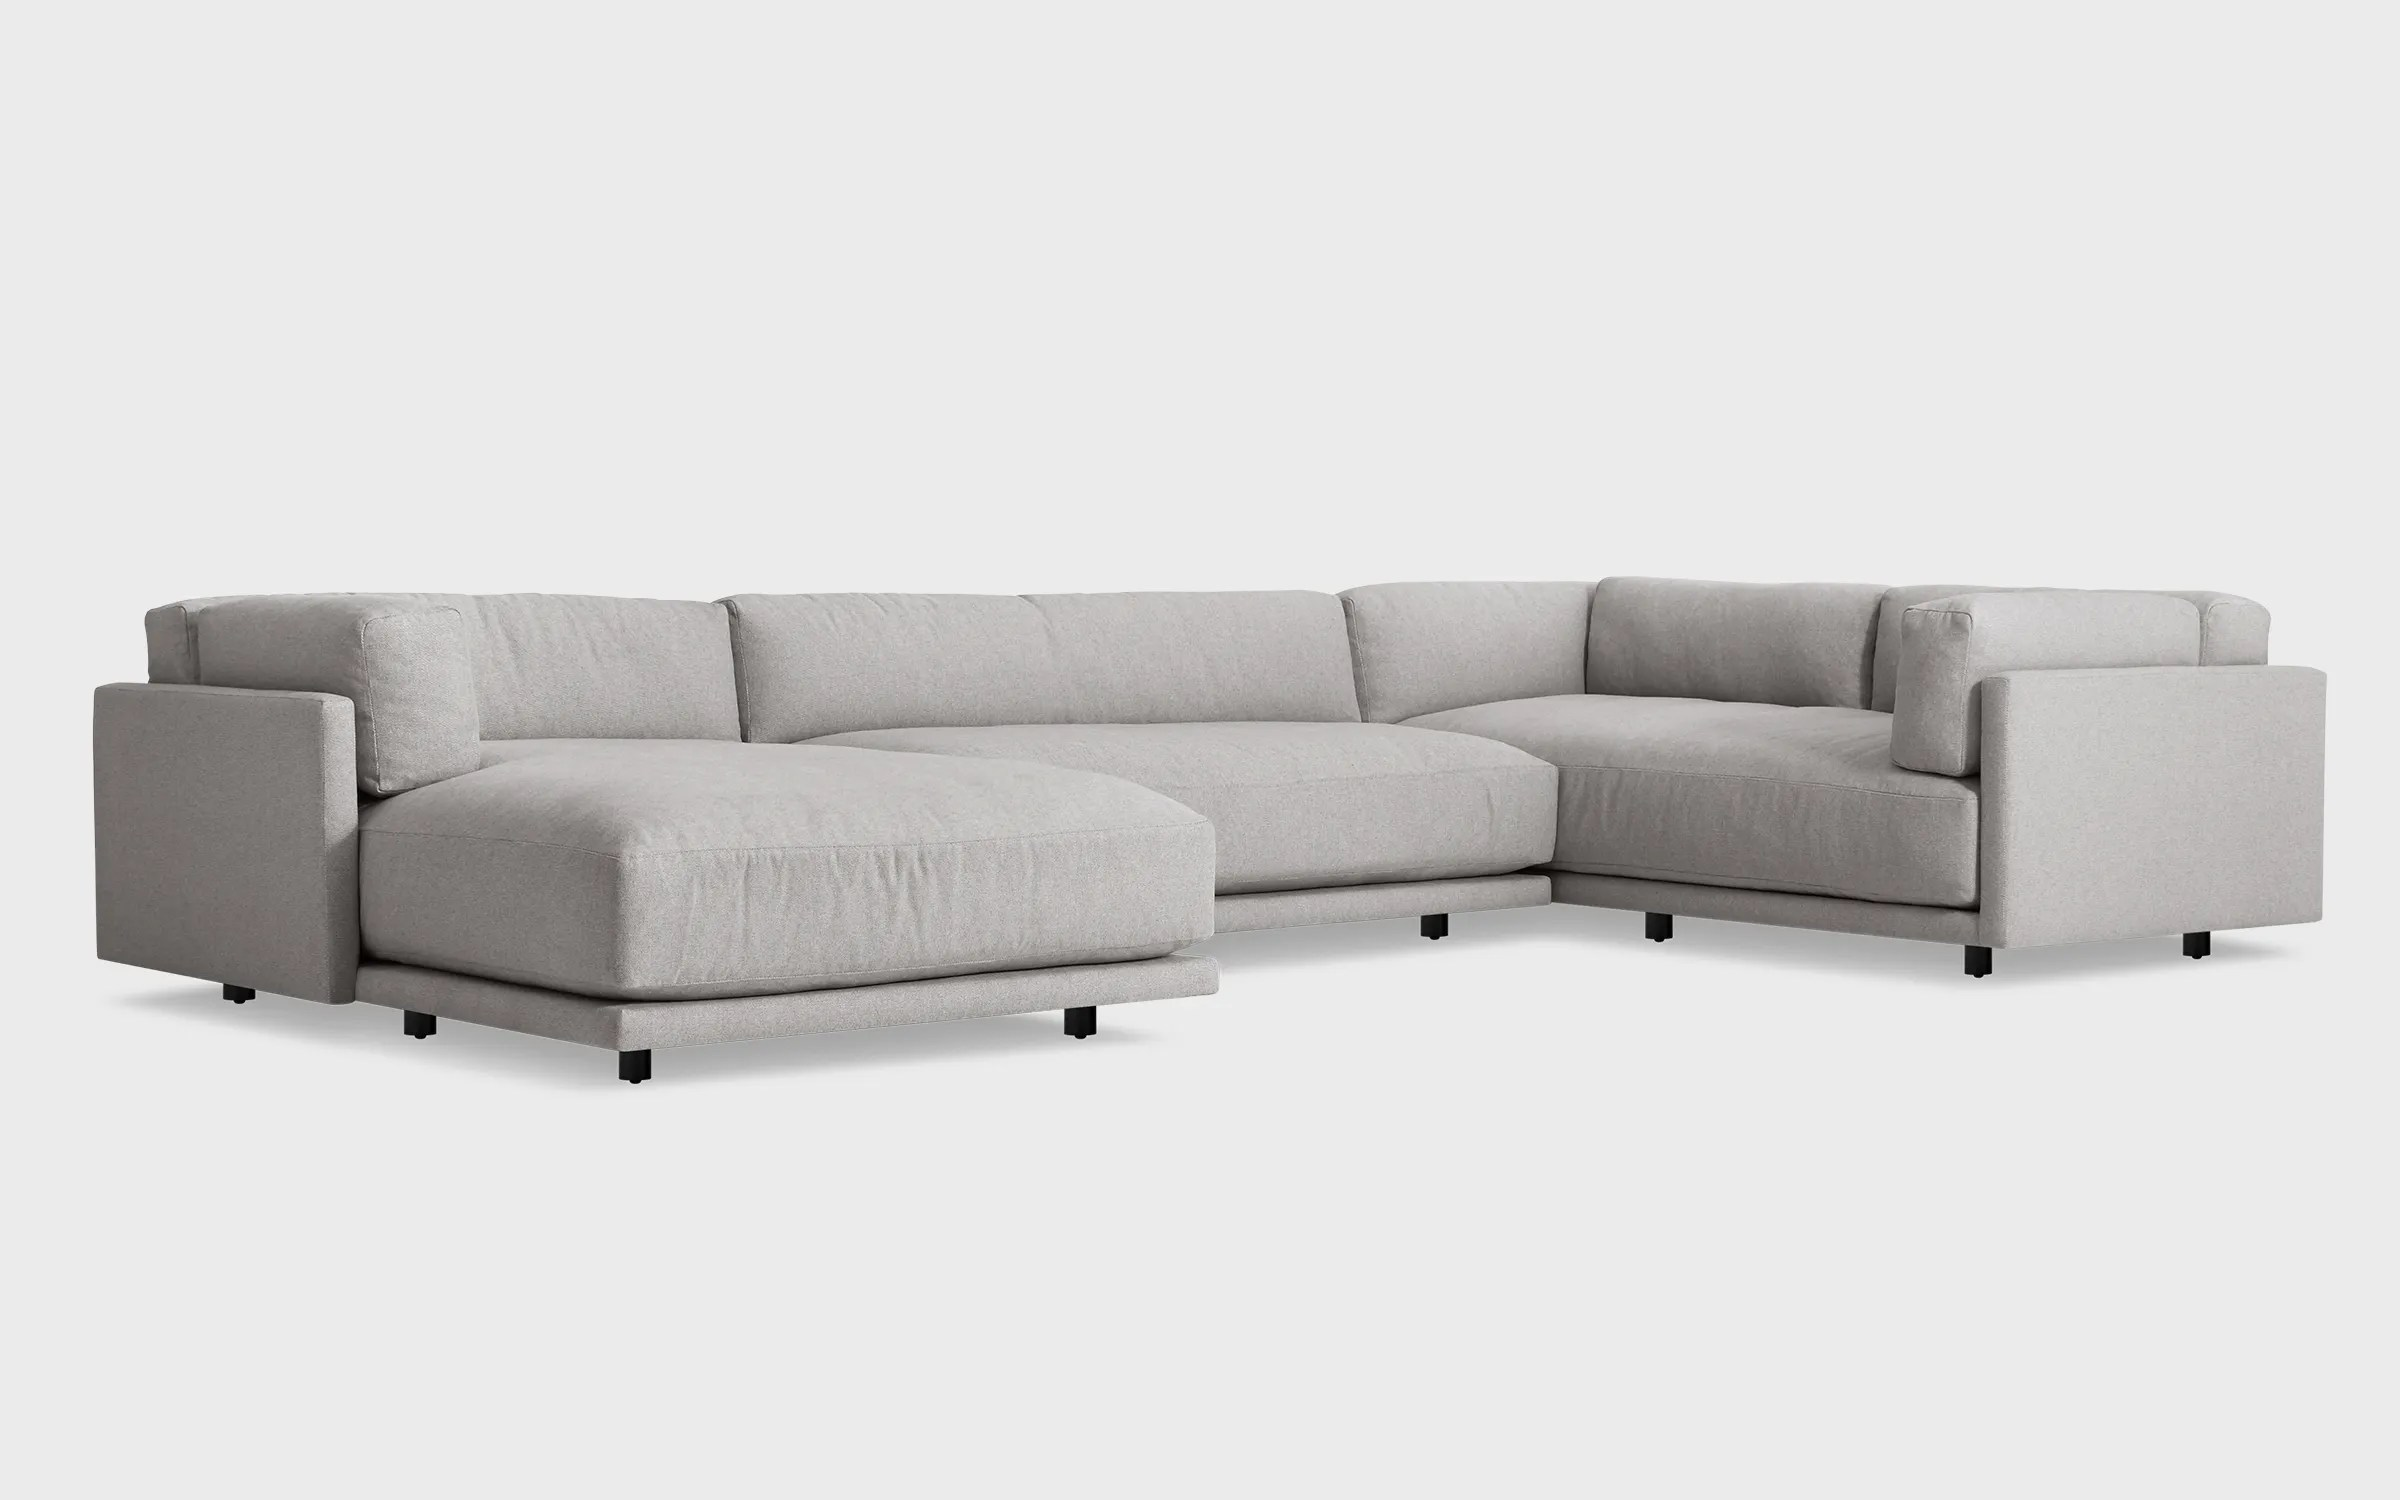 sofa w chaise get rid of old bristol sunday l sectional blu dot left arm